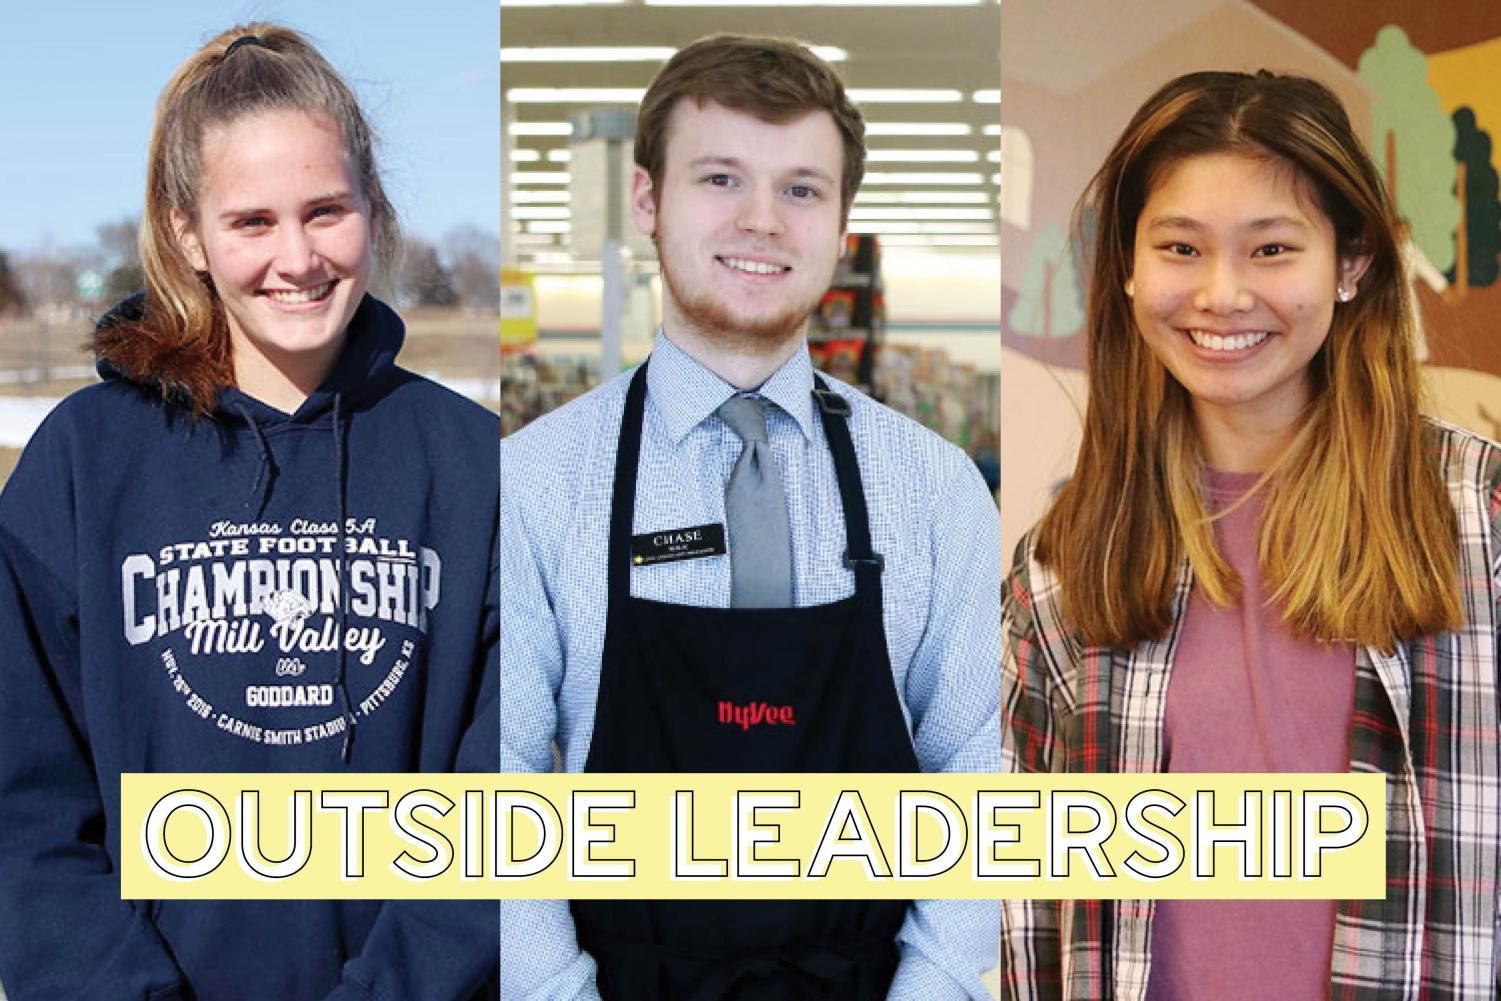 Partaking in leadership roles outside of school, sophomore Emma Schieber is a team captain for her KC Fusion club soccer team, senior Chase Mick is an assistant manager at Hy-Vee and senior Libby Mullican serves on the regional youth cabinet.